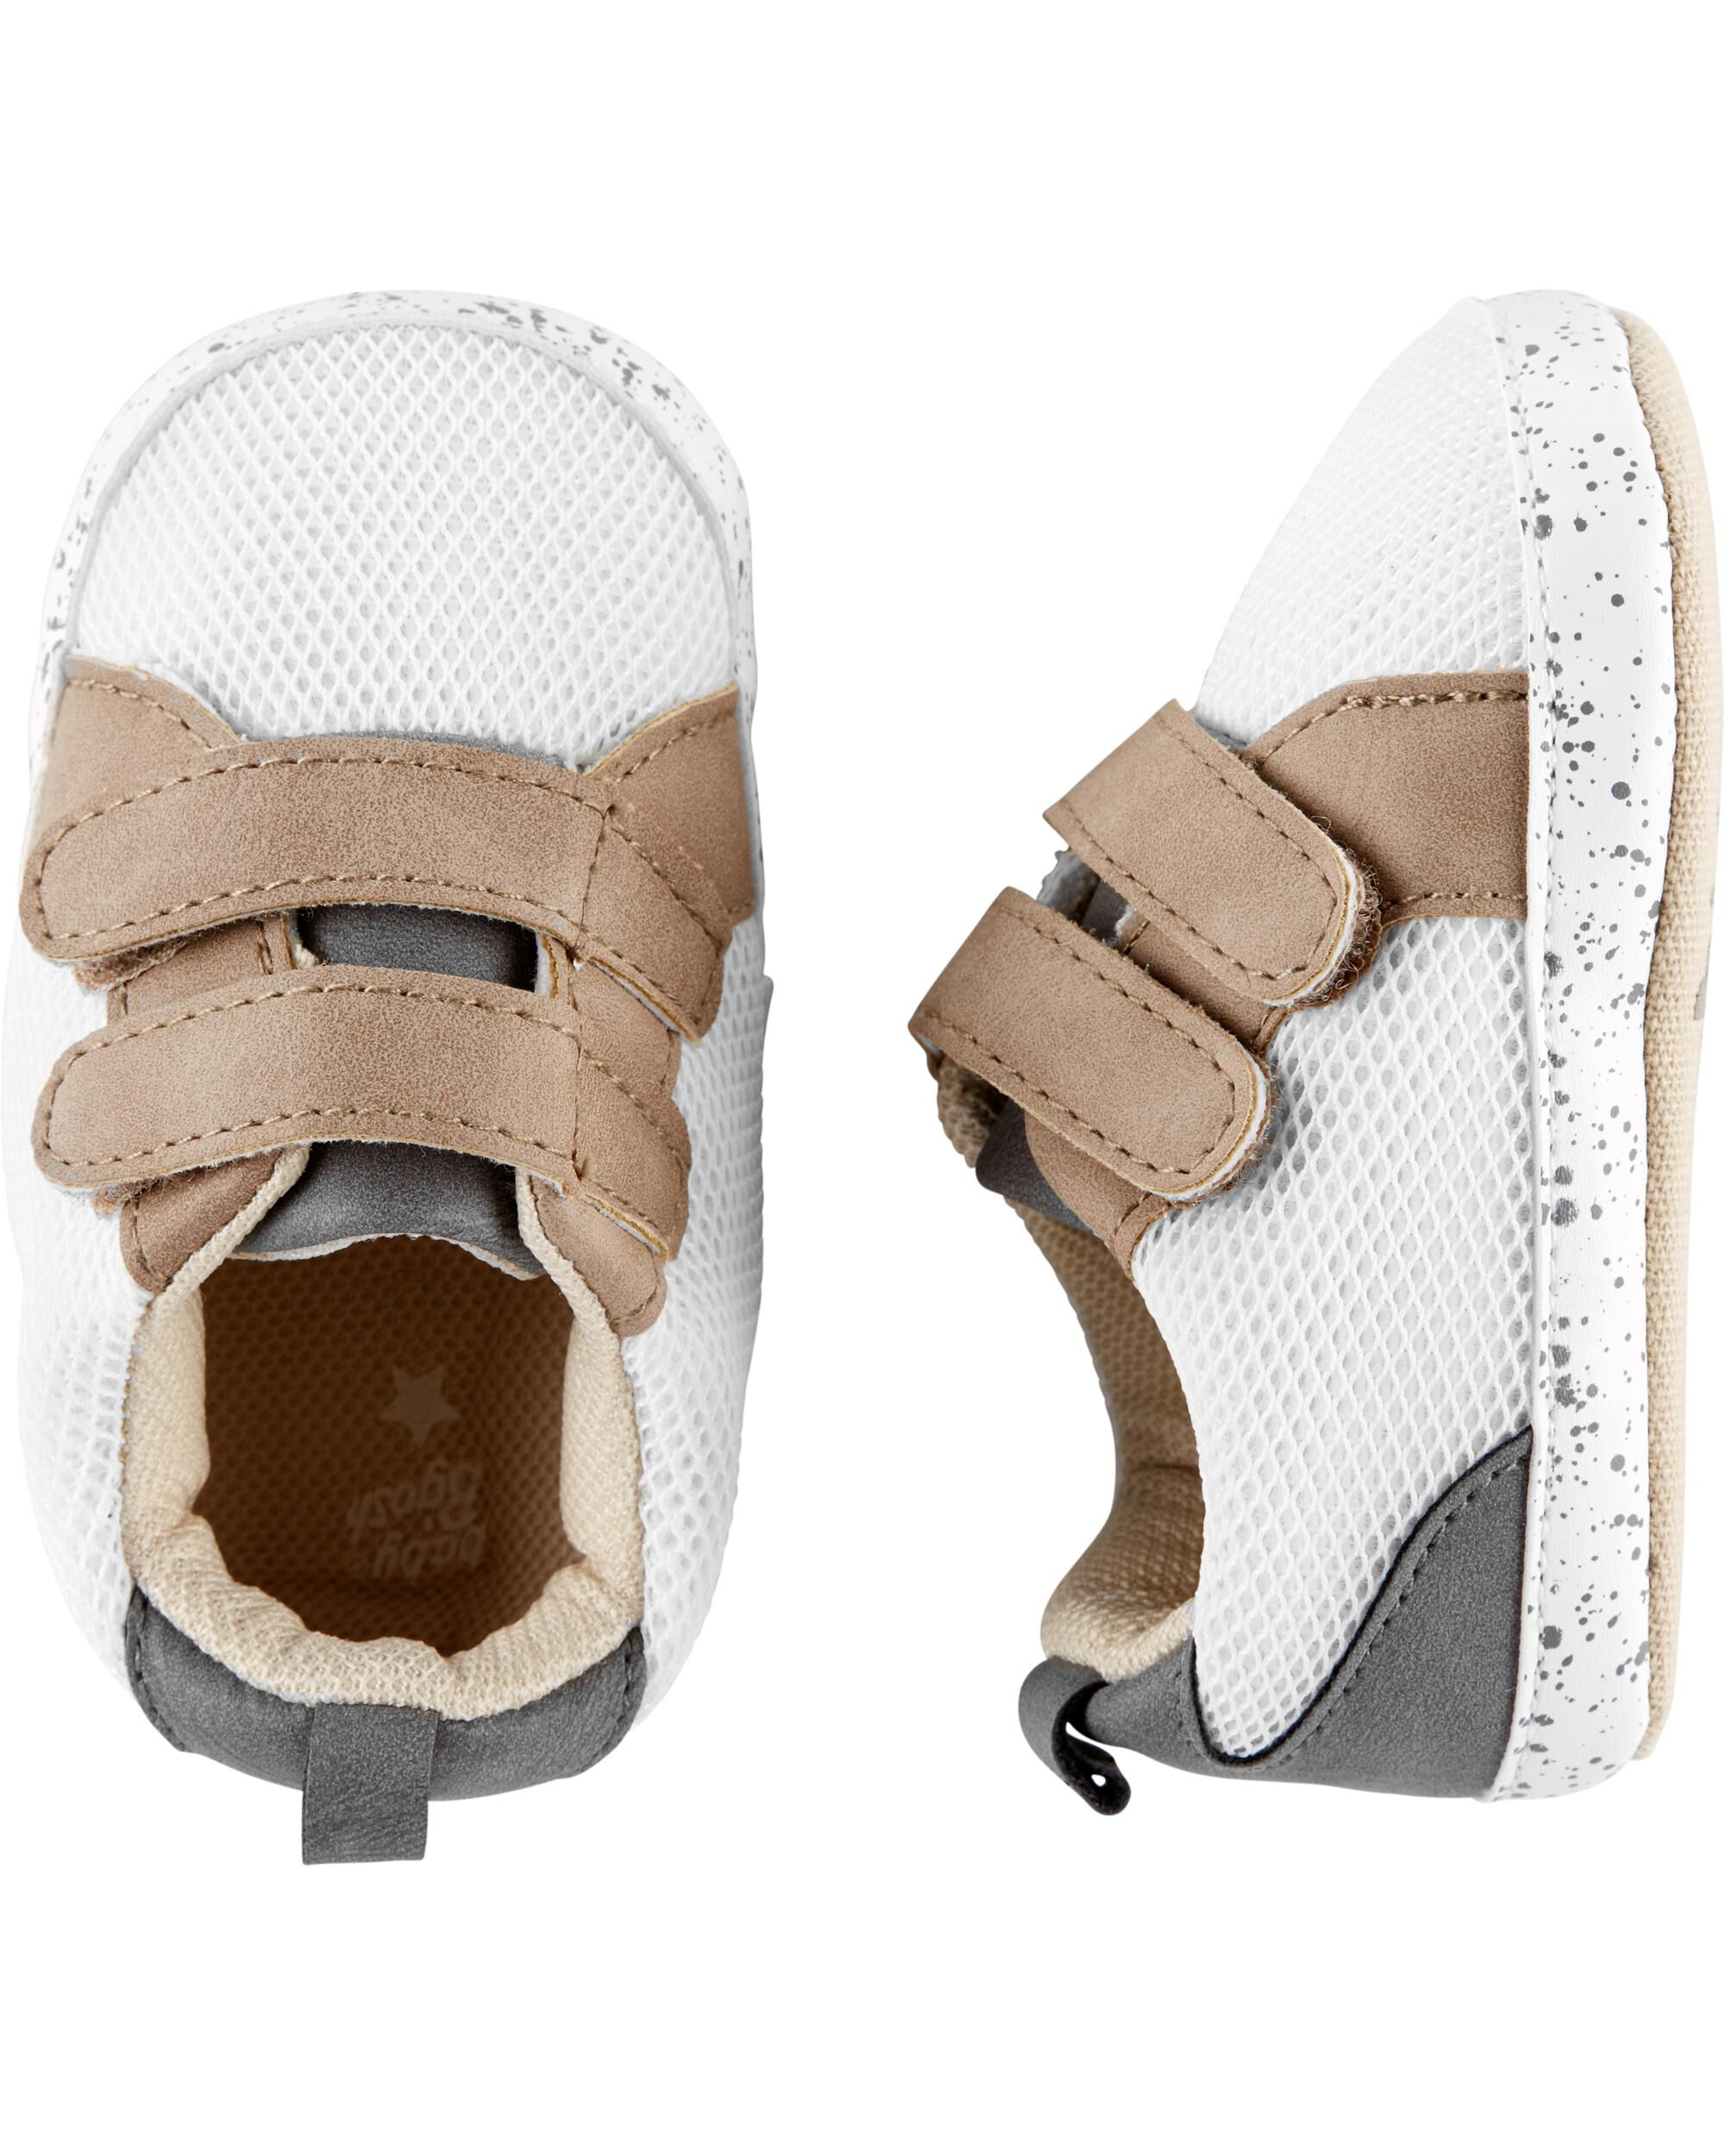 *Clearance*  OshKosh Sneaker Baby Shoes